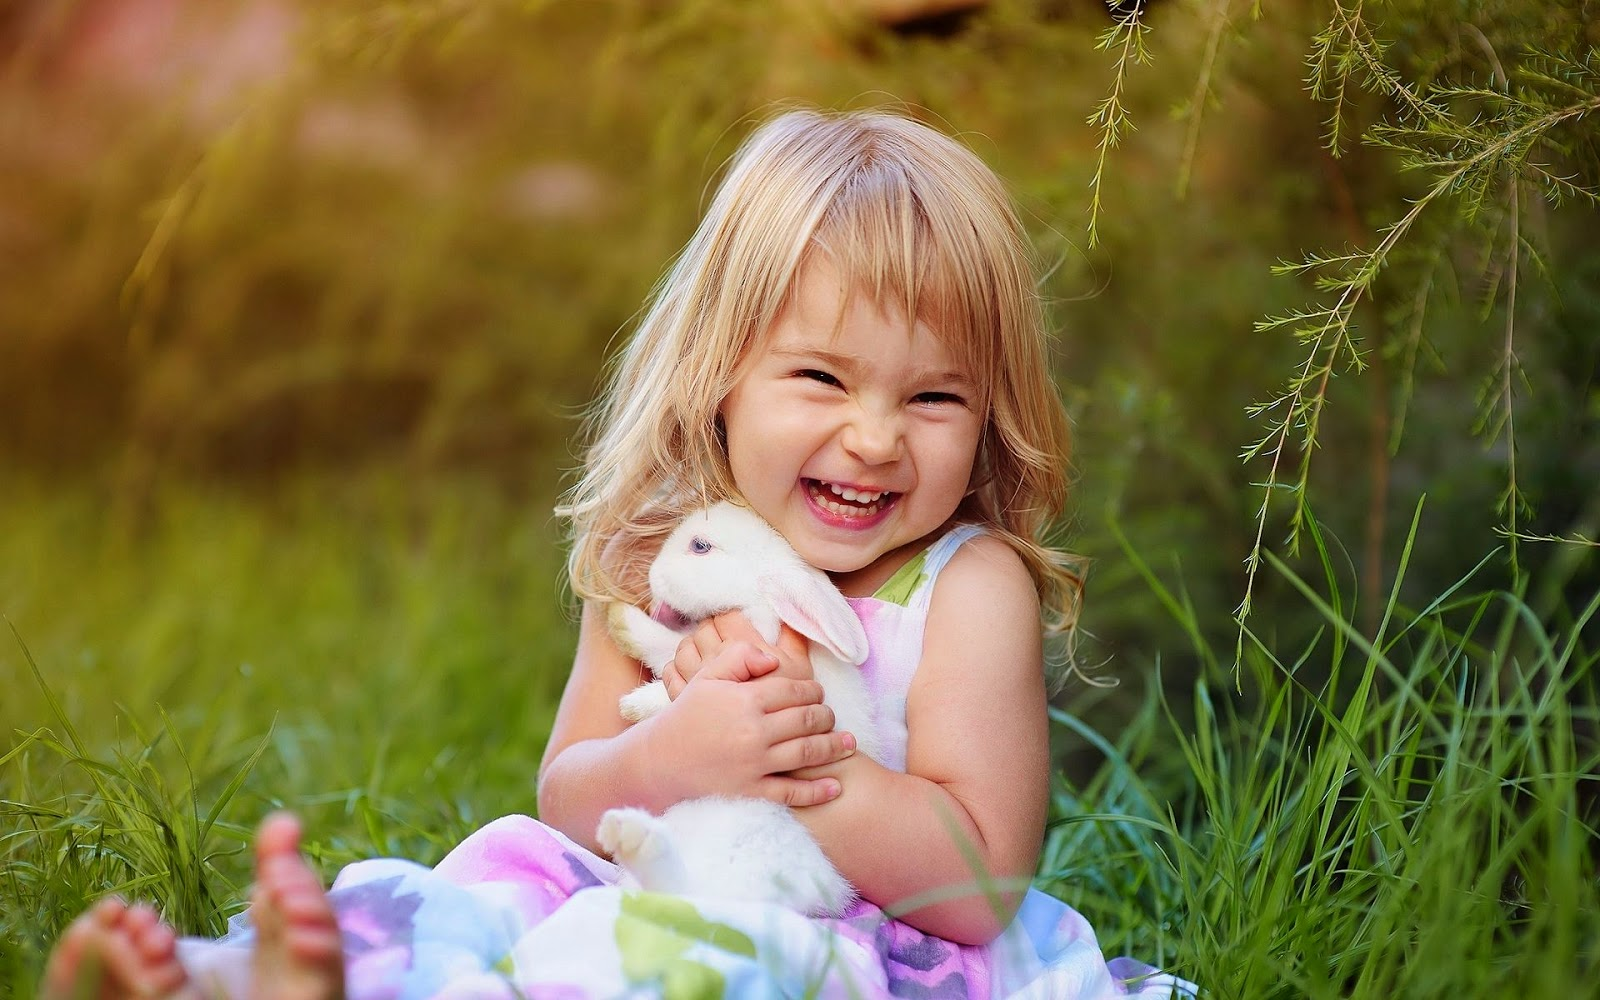 hd wallpaper cute laughing baby wallpapers hd wallpapers baby 1600x1000